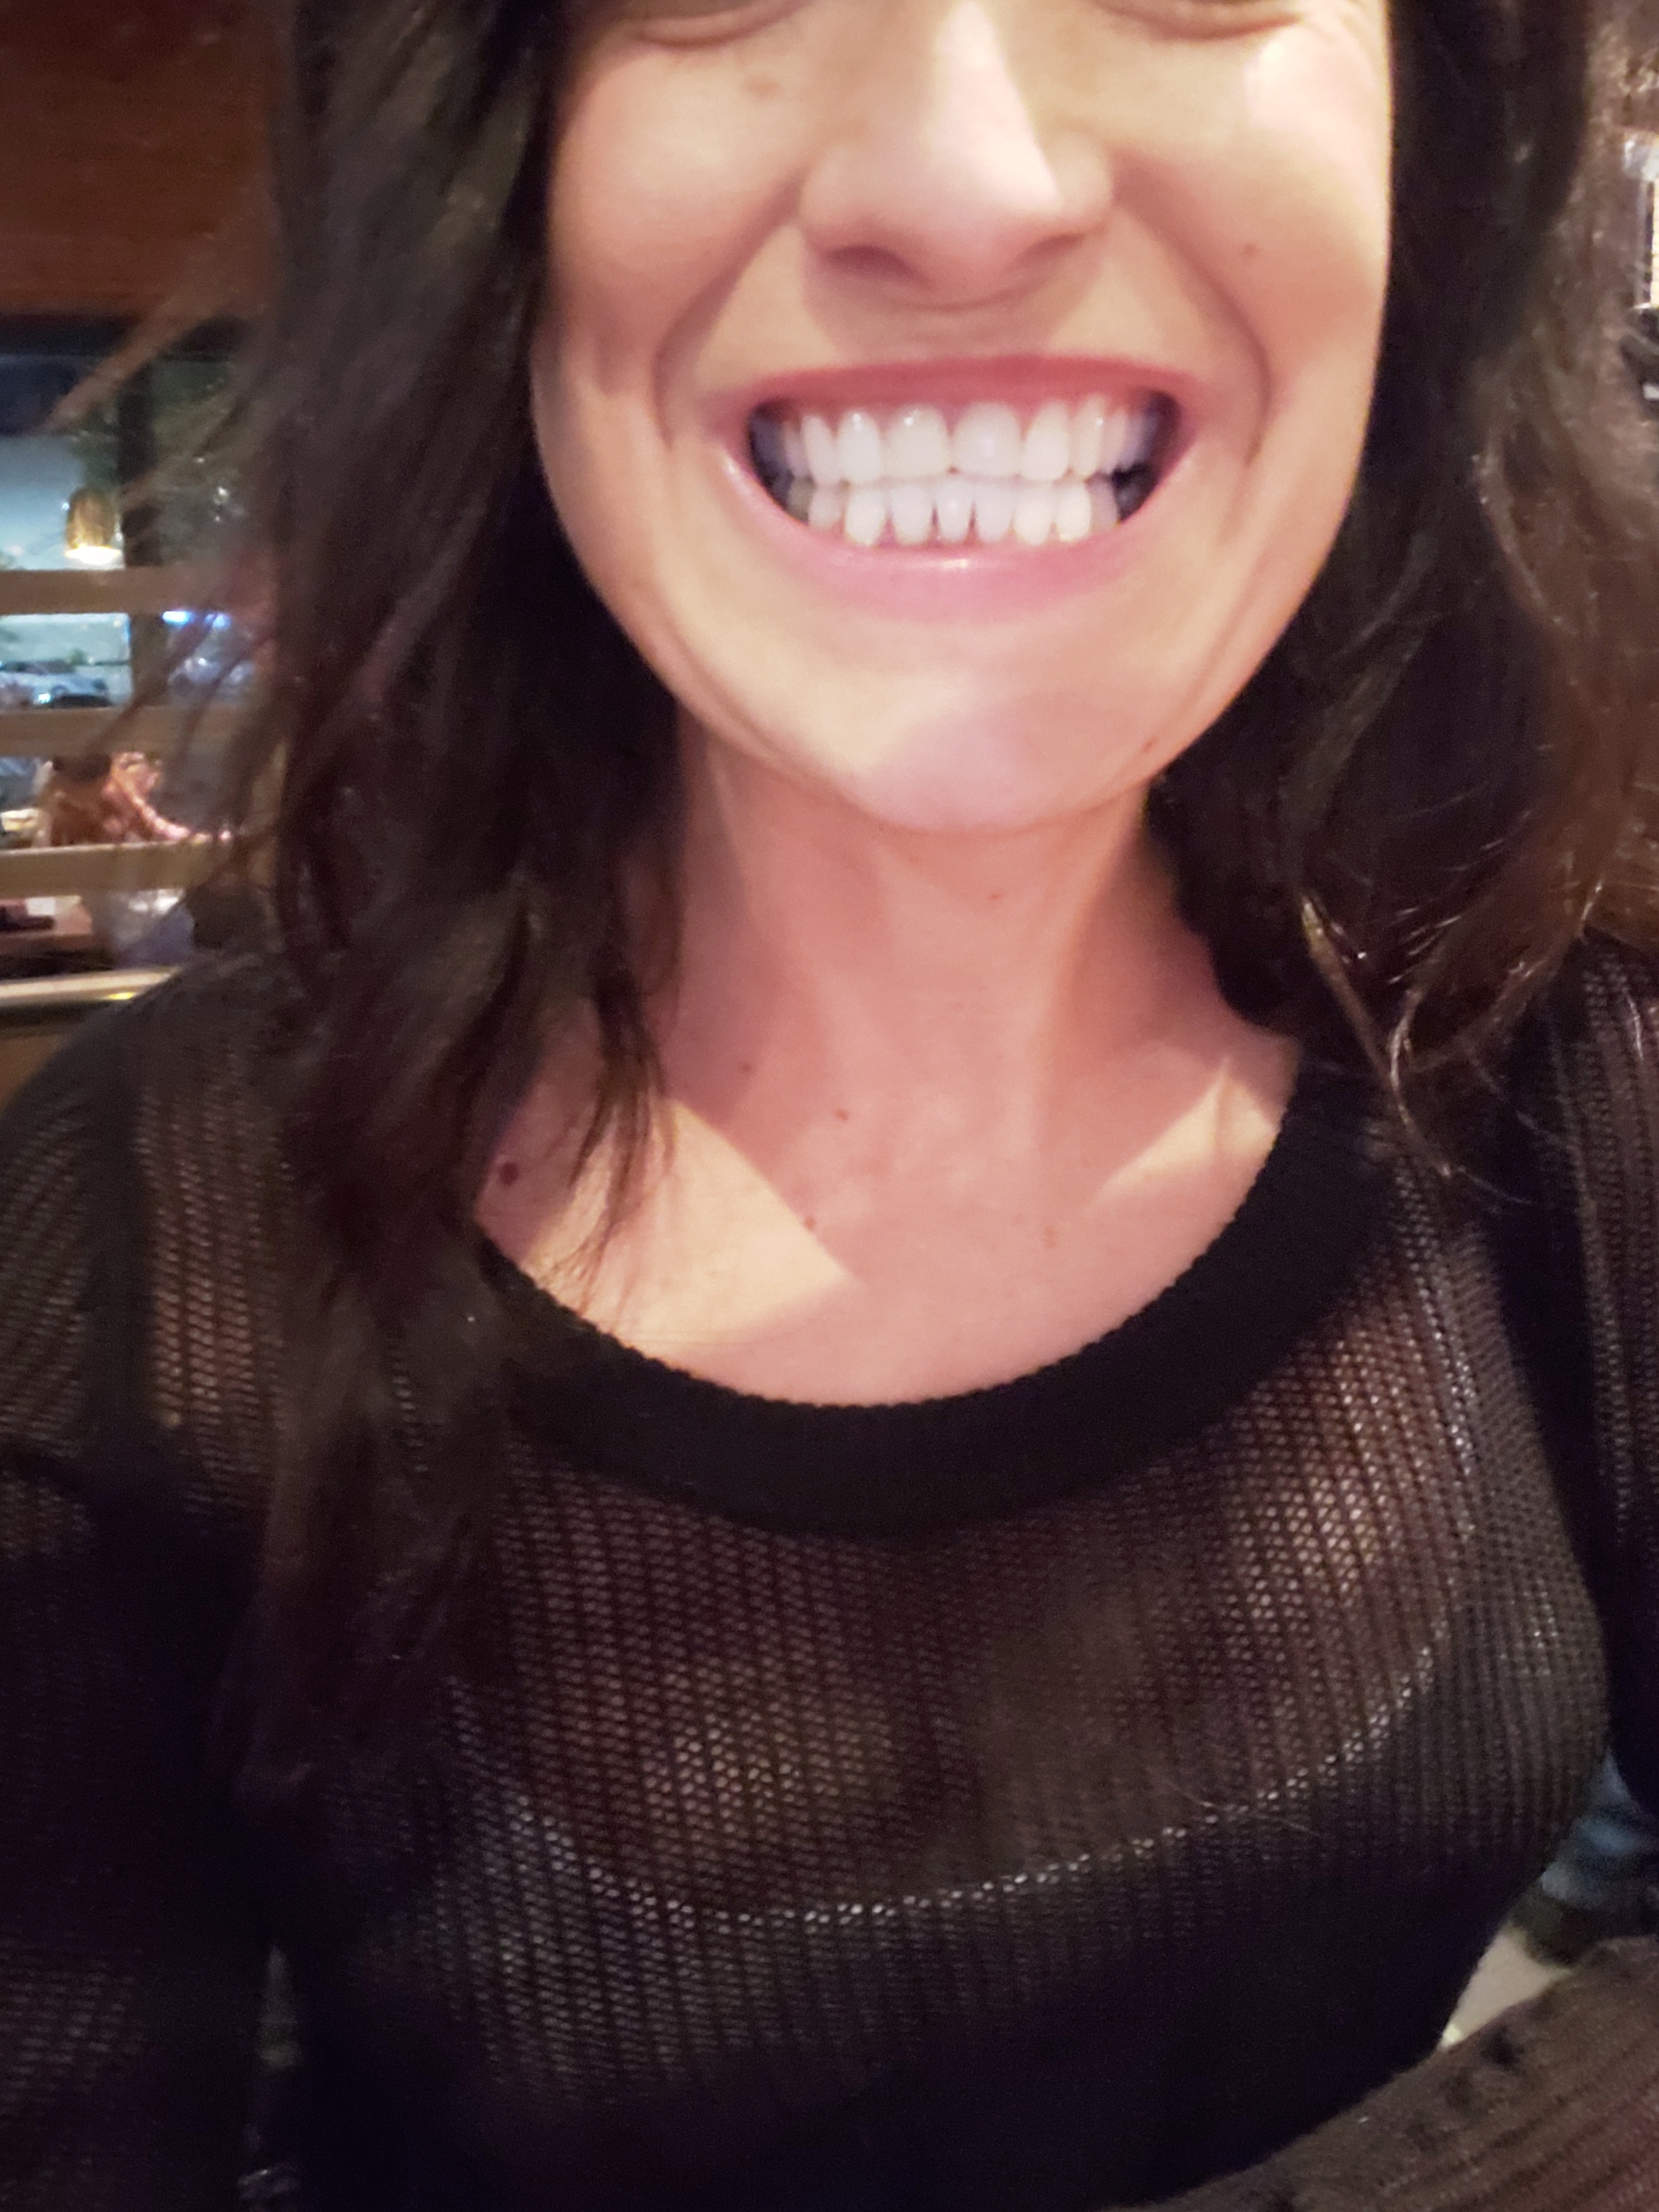 My teeth AFTER Invisalign and BEFORE my permanent teeth were put in - my teeth are still short in the front but the gap closed quite a bit and they were straightened in just months.